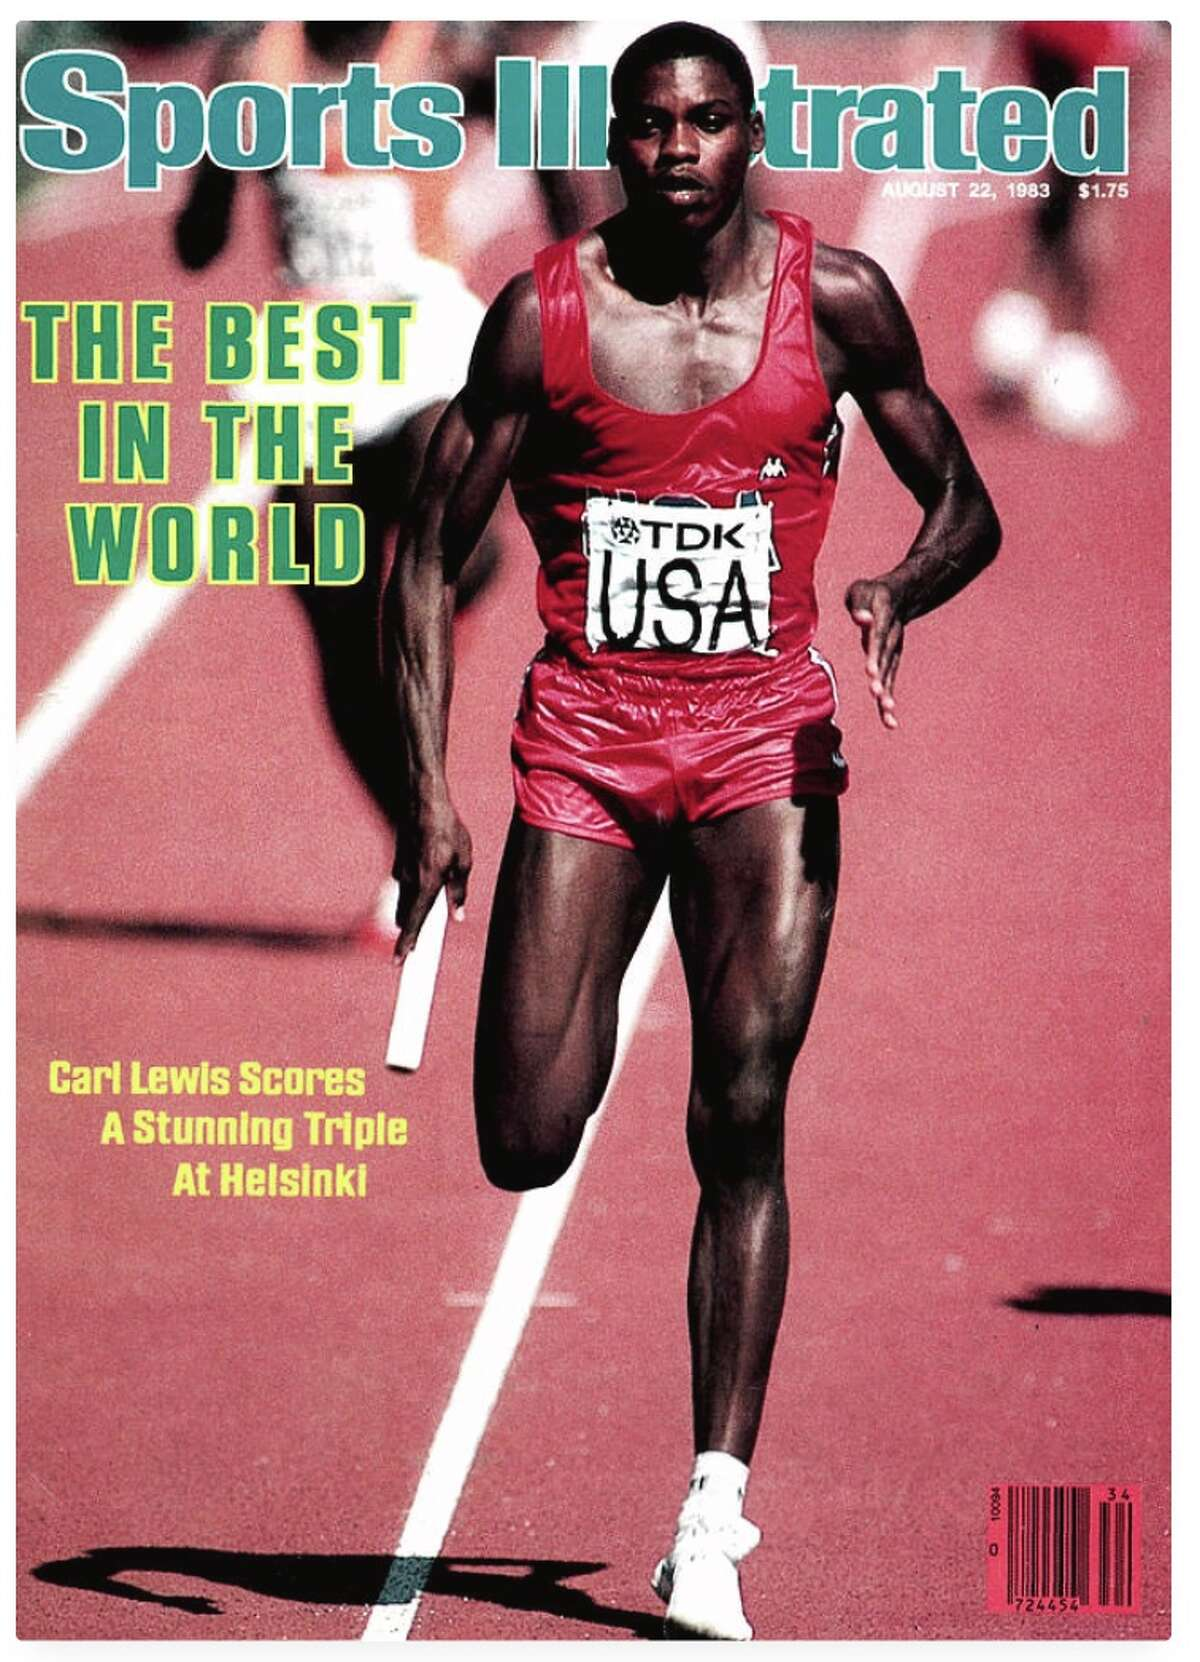 August 22, 1983: Carl Lewis makes his debut on the SI cover after winning gold in the 100 meters, long jump and 4X100 relay at the World Championships in Helsinki in 1983.